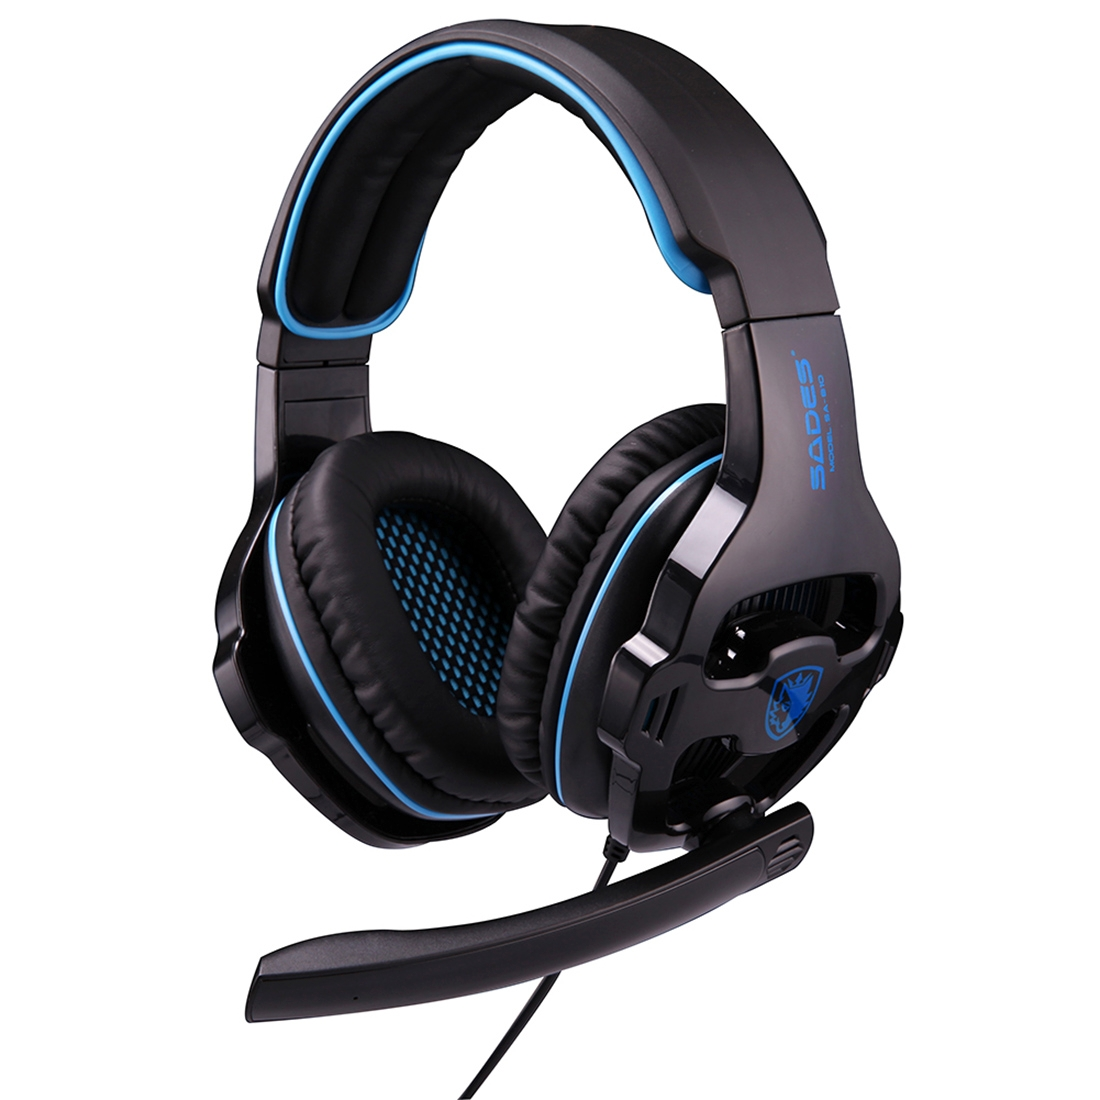 sades sa 810 gaming headset wired headphone with wire control mic for pc laptop black. Black Bedroom Furniture Sets. Home Design Ideas